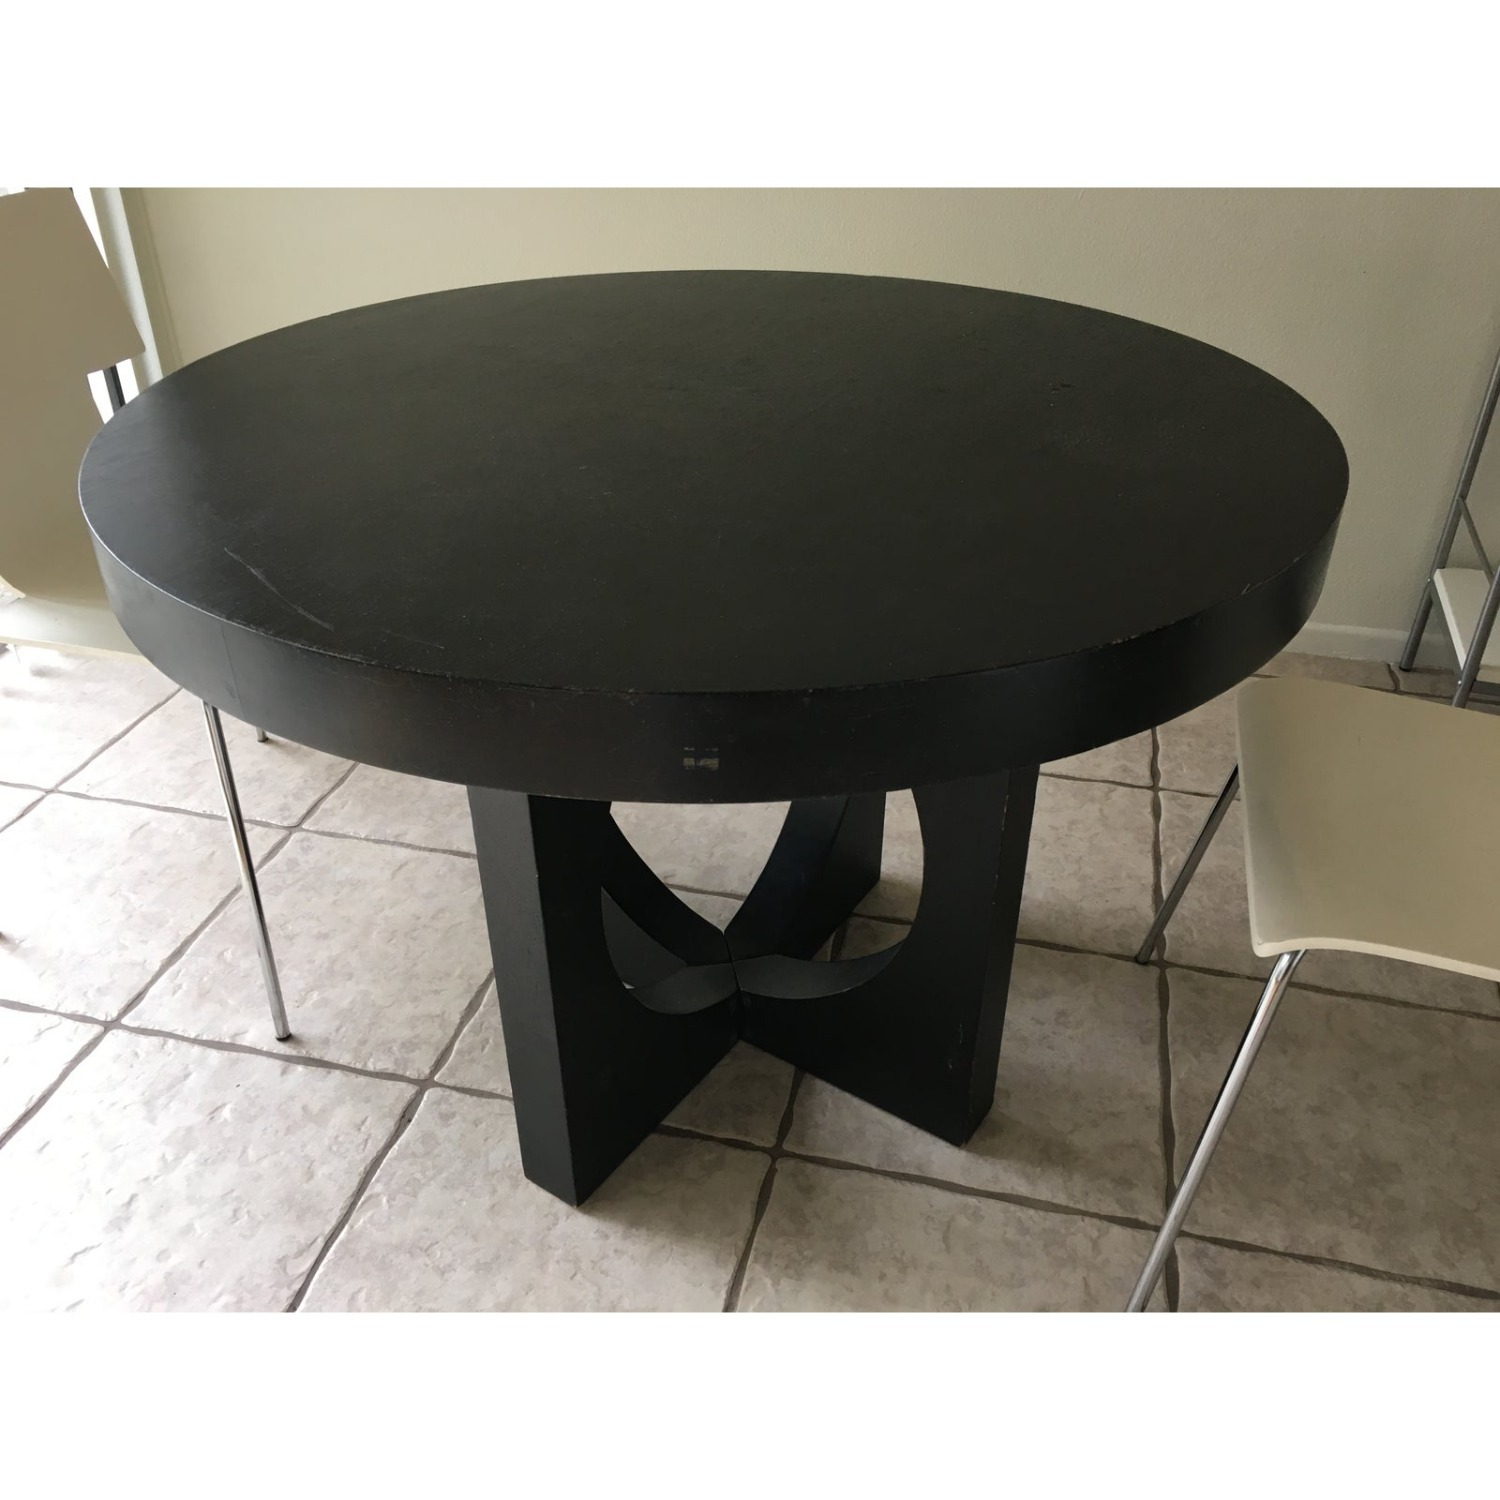 West Elm Round Cut Out Dining Table - image-1